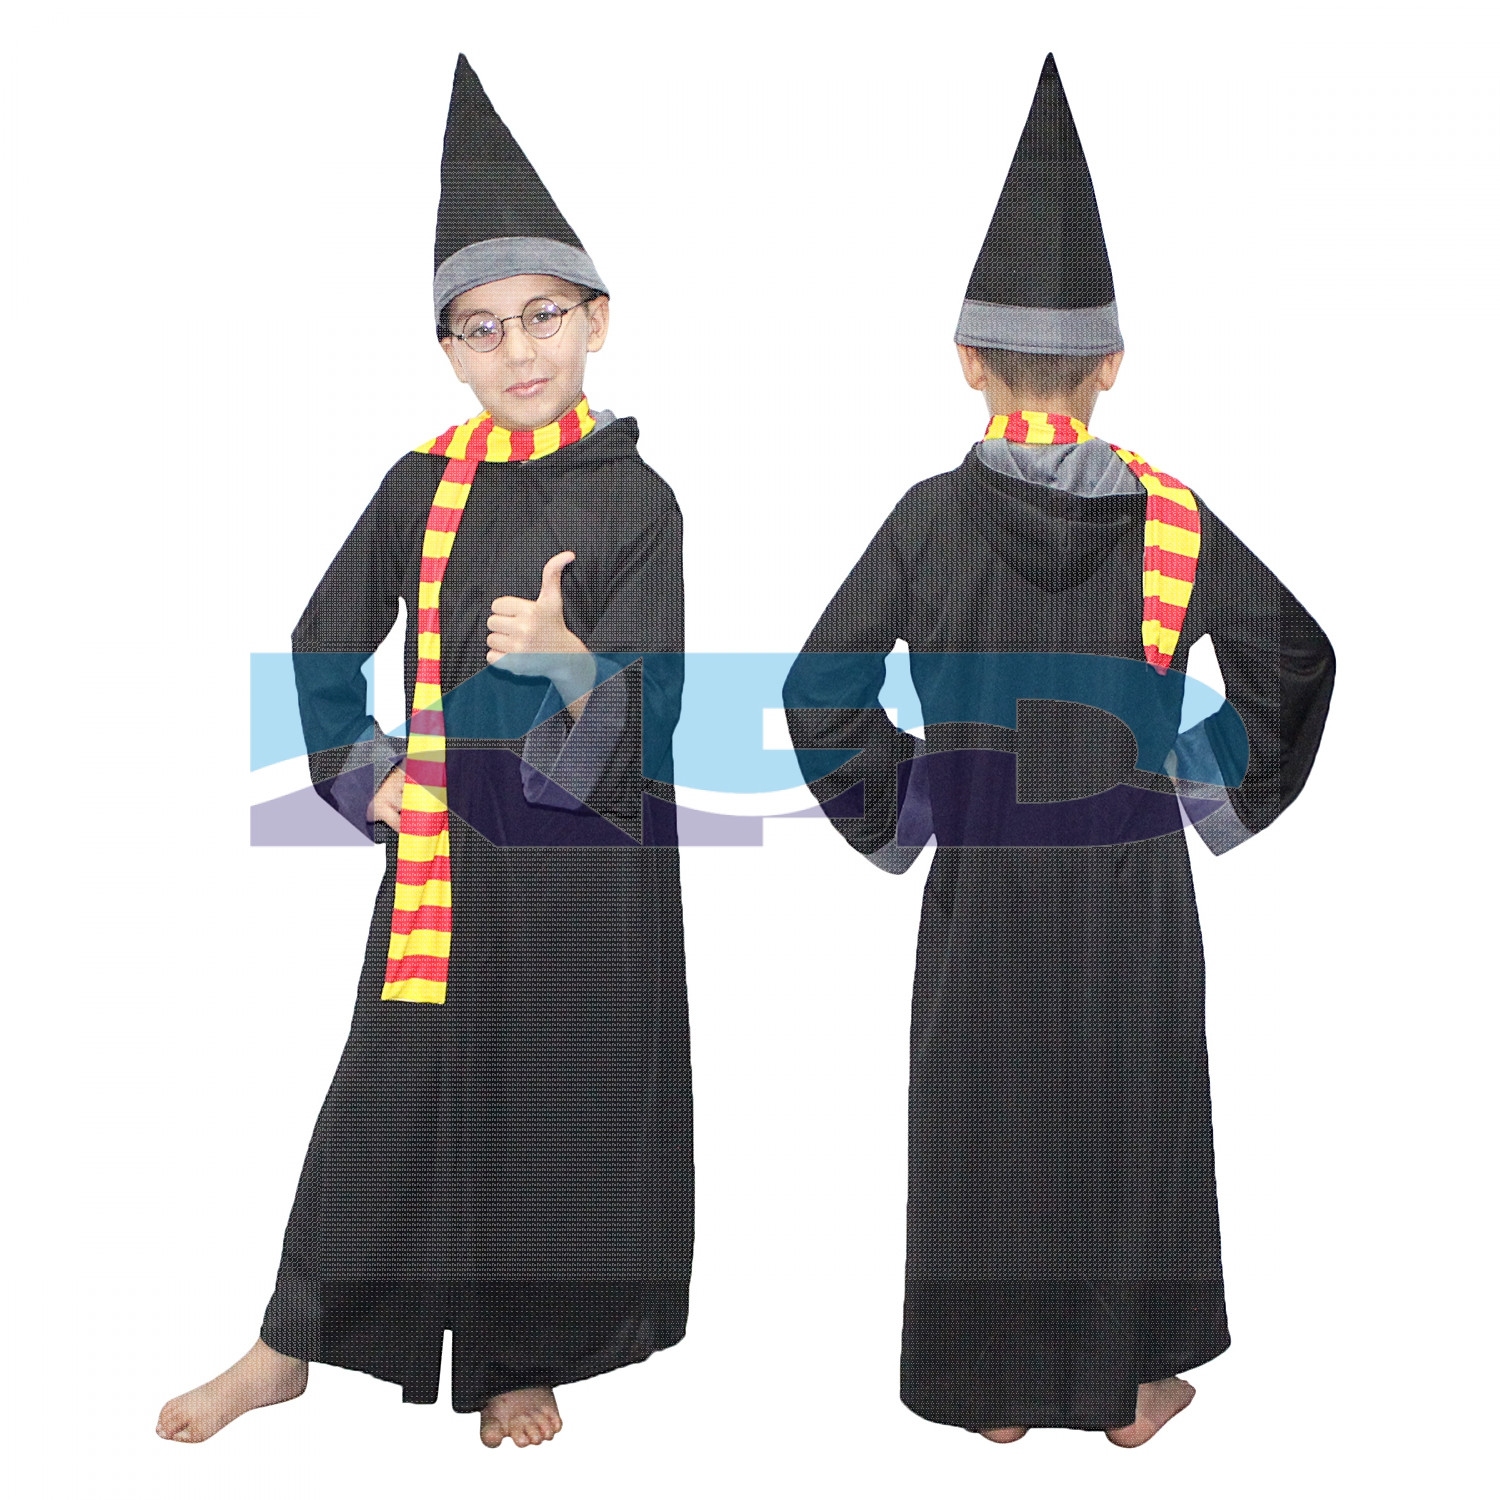 Harry Potter Fancy Dress For Kids/Hogwarts/Halloween Costume/Cosplay Costume For Kids/Theme Party/Competition/Stage Shows/Birthday Party Dress